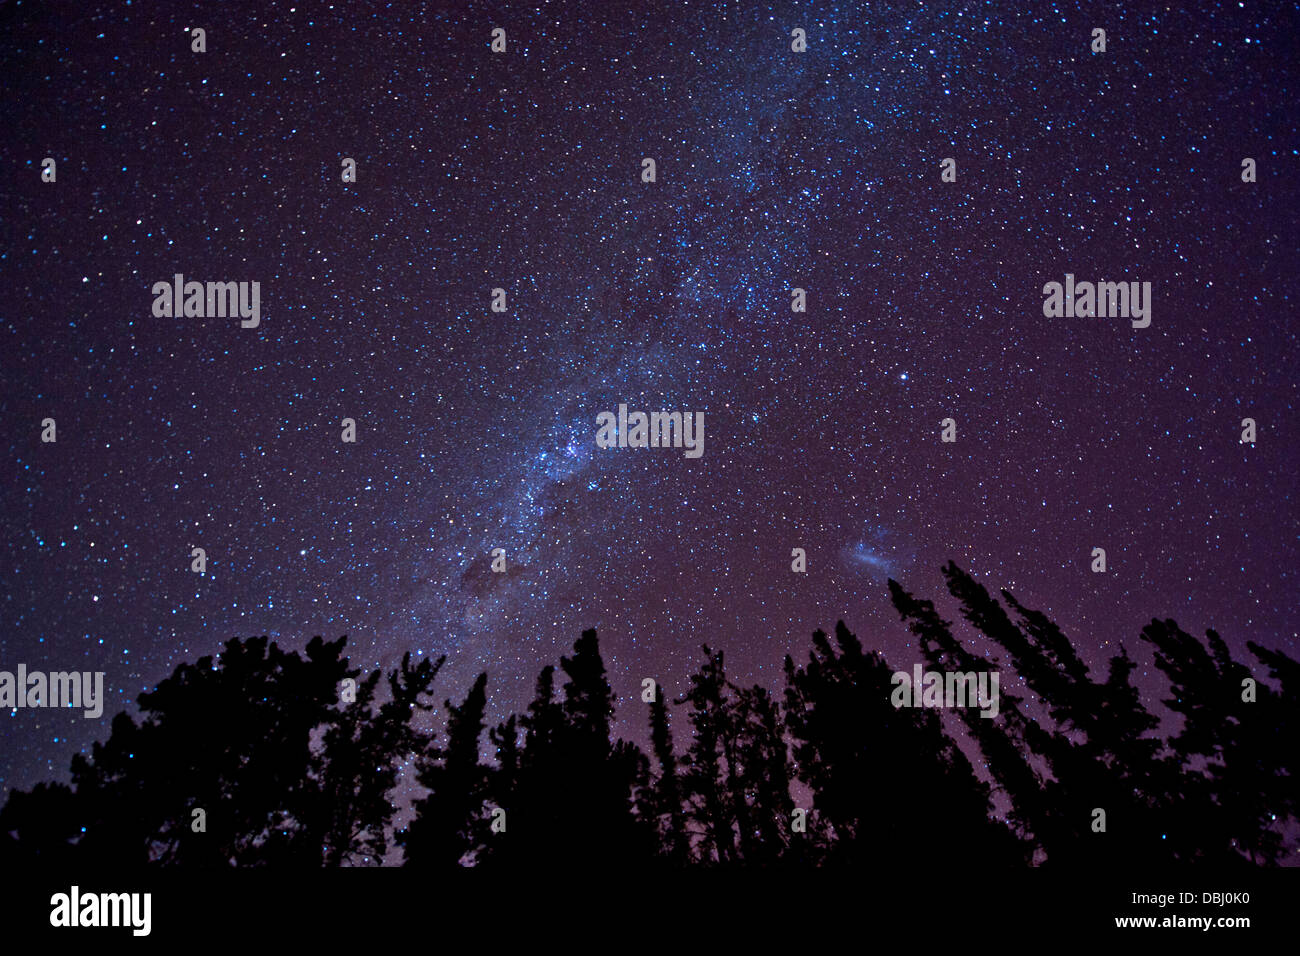 Milky Way seen from the Cederberg Mountains in South Africa. - Stock Image